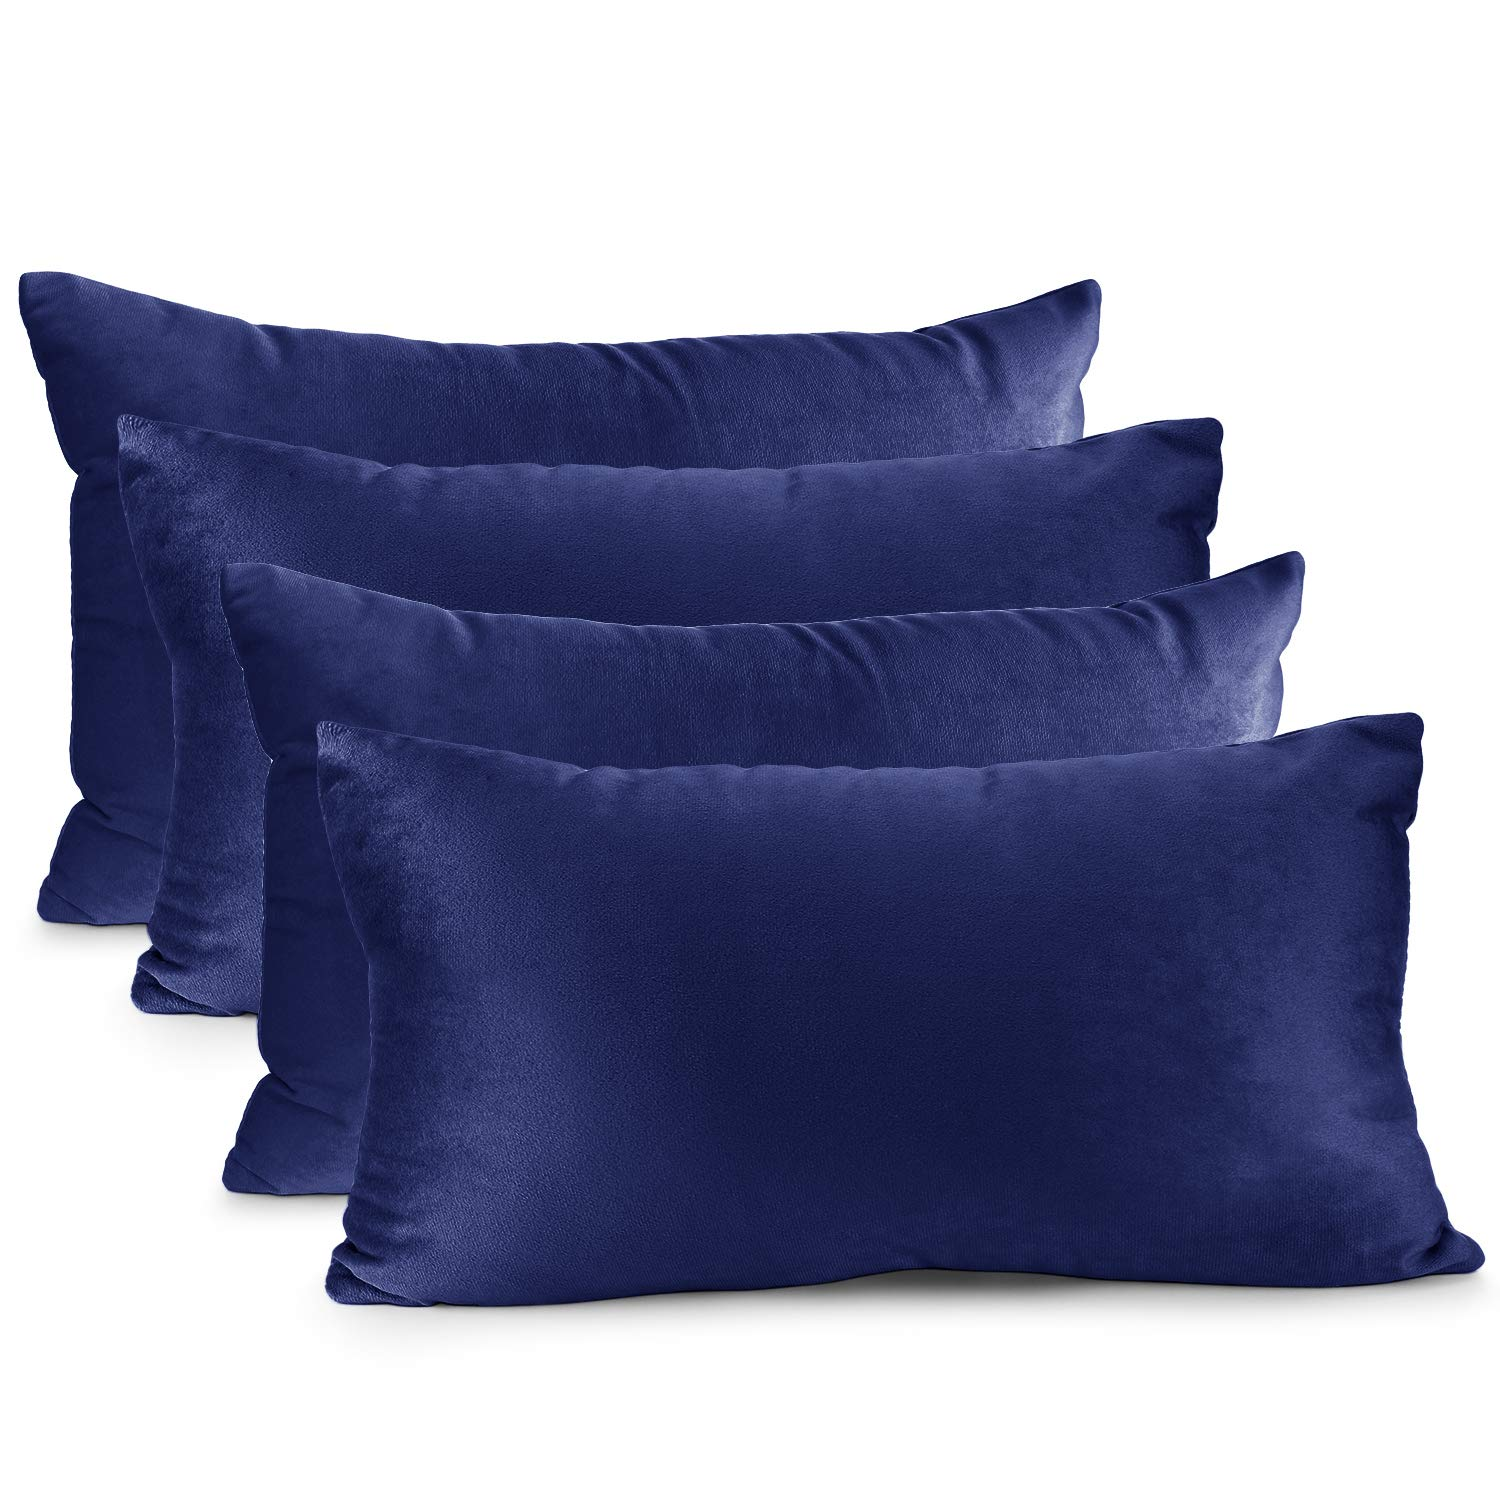 Nestl Bedding Throw Pillow Cover 12 X 20 Soft Square Decorative Throw Pillow Covers Cozy Velvet Cushion Case For Sofa Couch Bedroom Set Of 4 Royal Blue